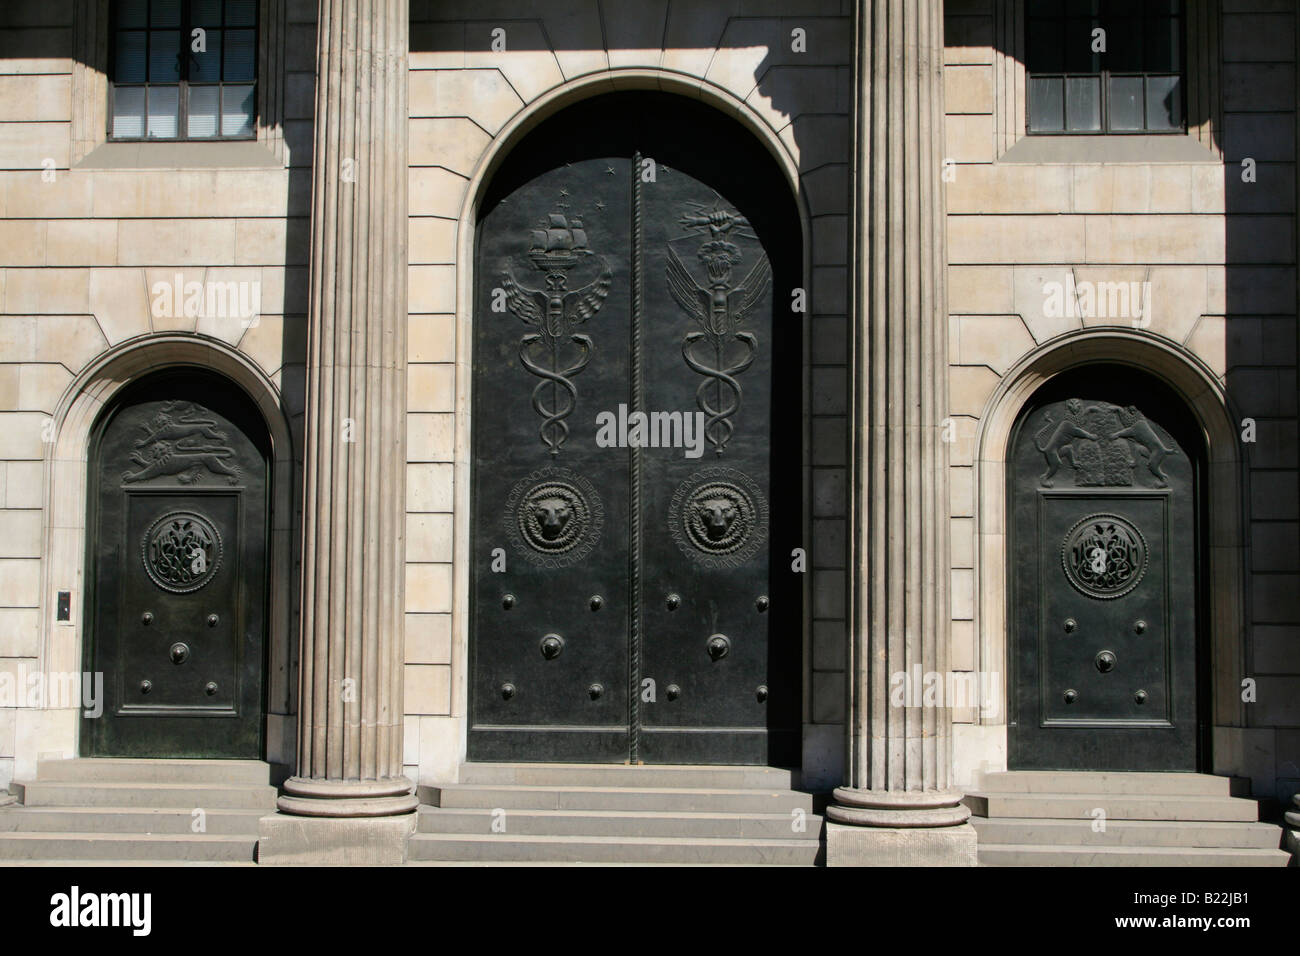 grand  entrance doors bank of england The Old Lady of Threadneedle Street city of london england uk gb - Stock Image